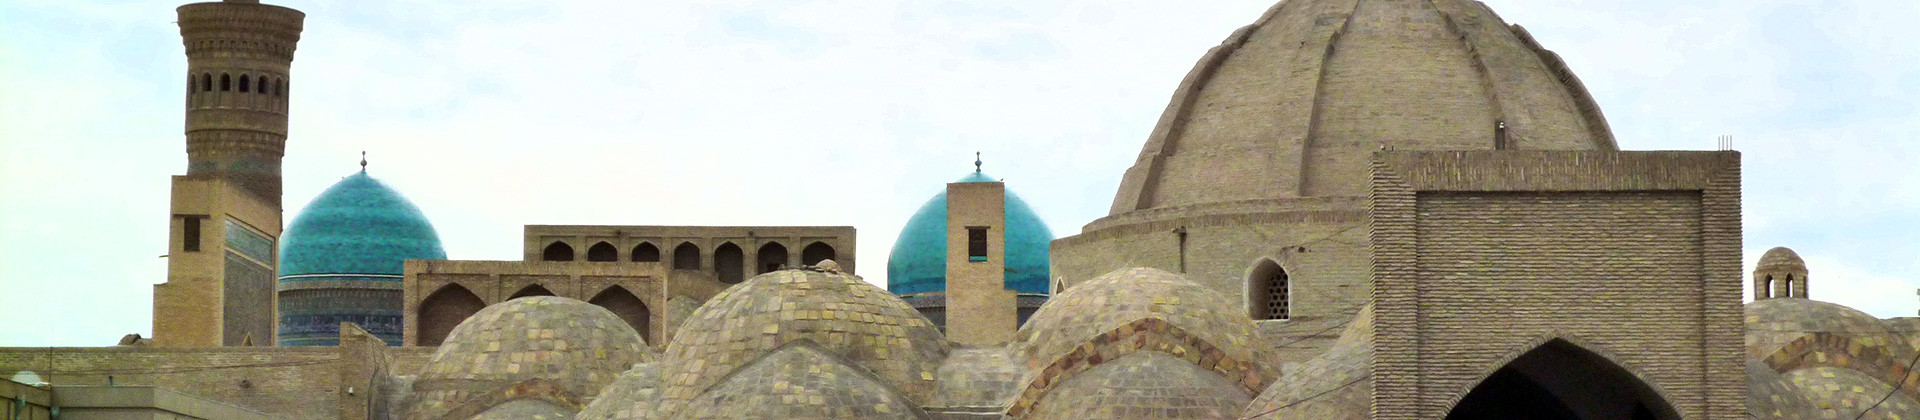 Uzbekistan - The Country Of The Blue Domes - 1